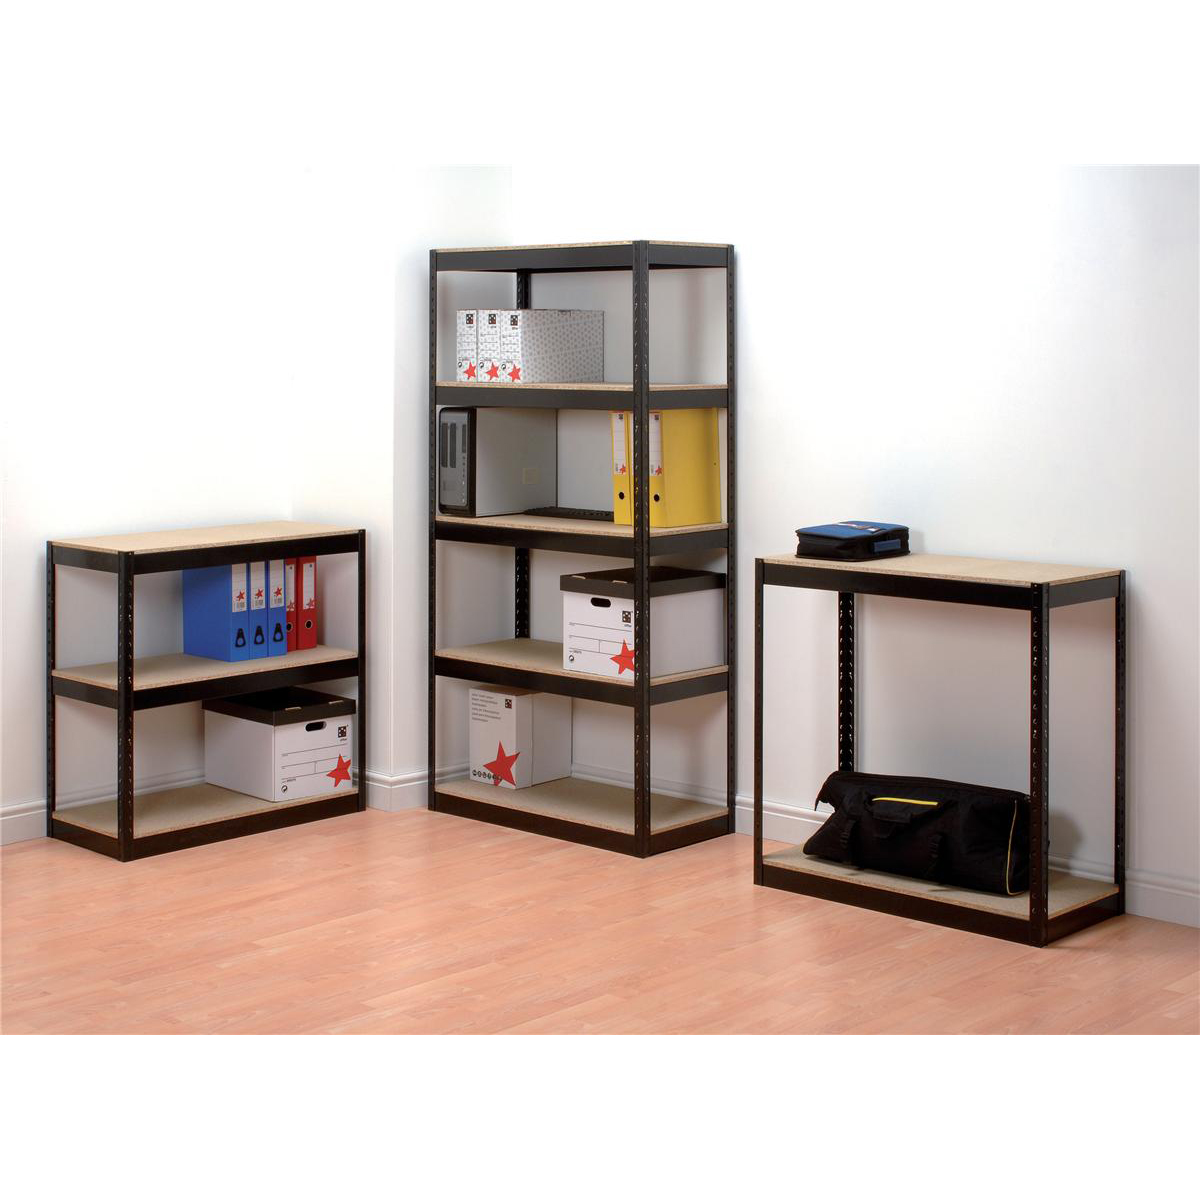 Influx Storage Shelving Unit Heavy-duty Boltless 5 Shelves Capacity 150kg Black Ref SP414581